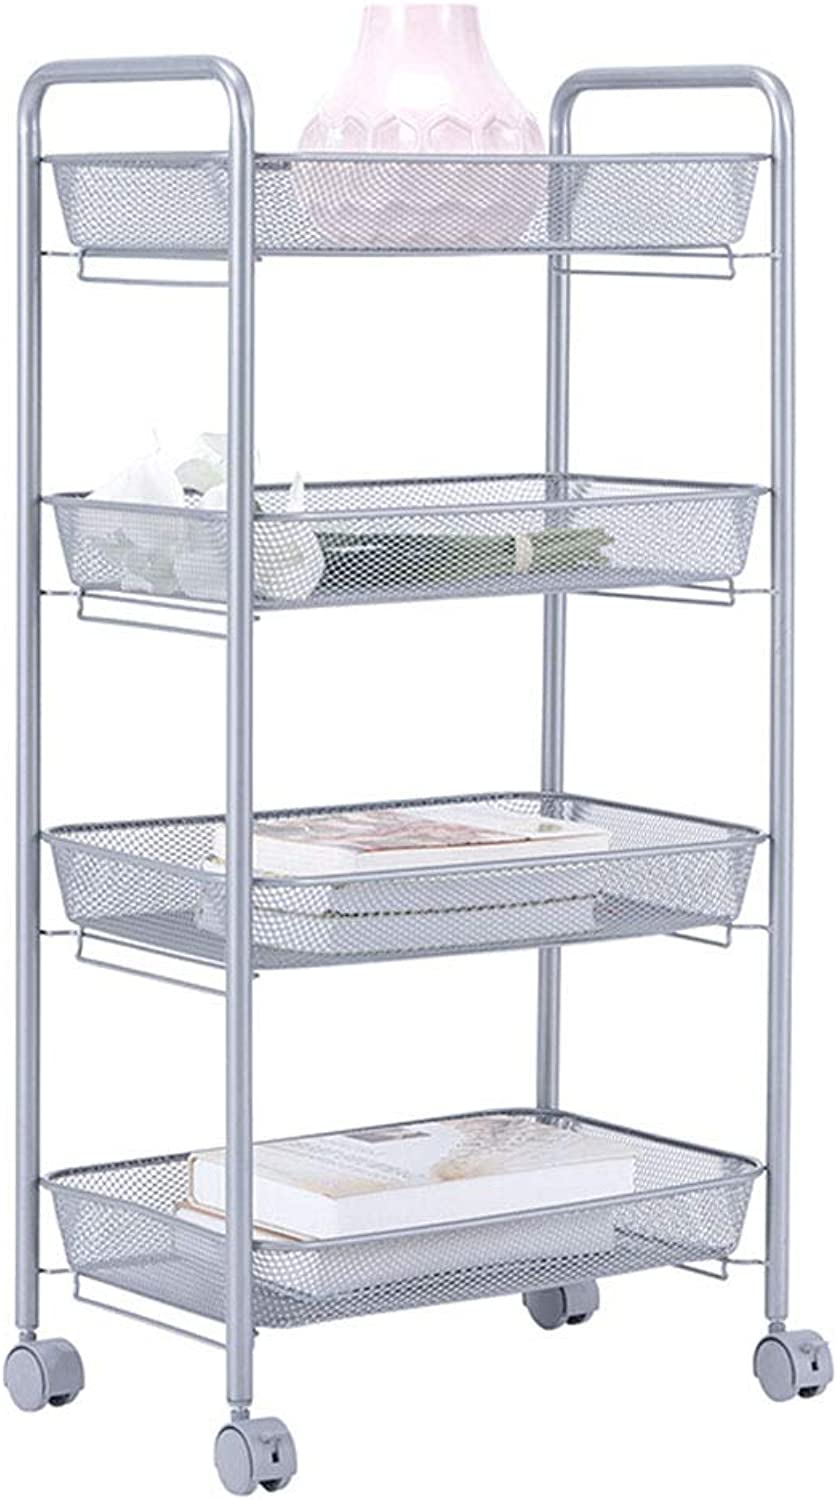 XLong-Home 4 Layers Storage Trolleys Racks Kitchen Fruit Vegetable Shelving Holders with 4 Rolling Castors Wheels